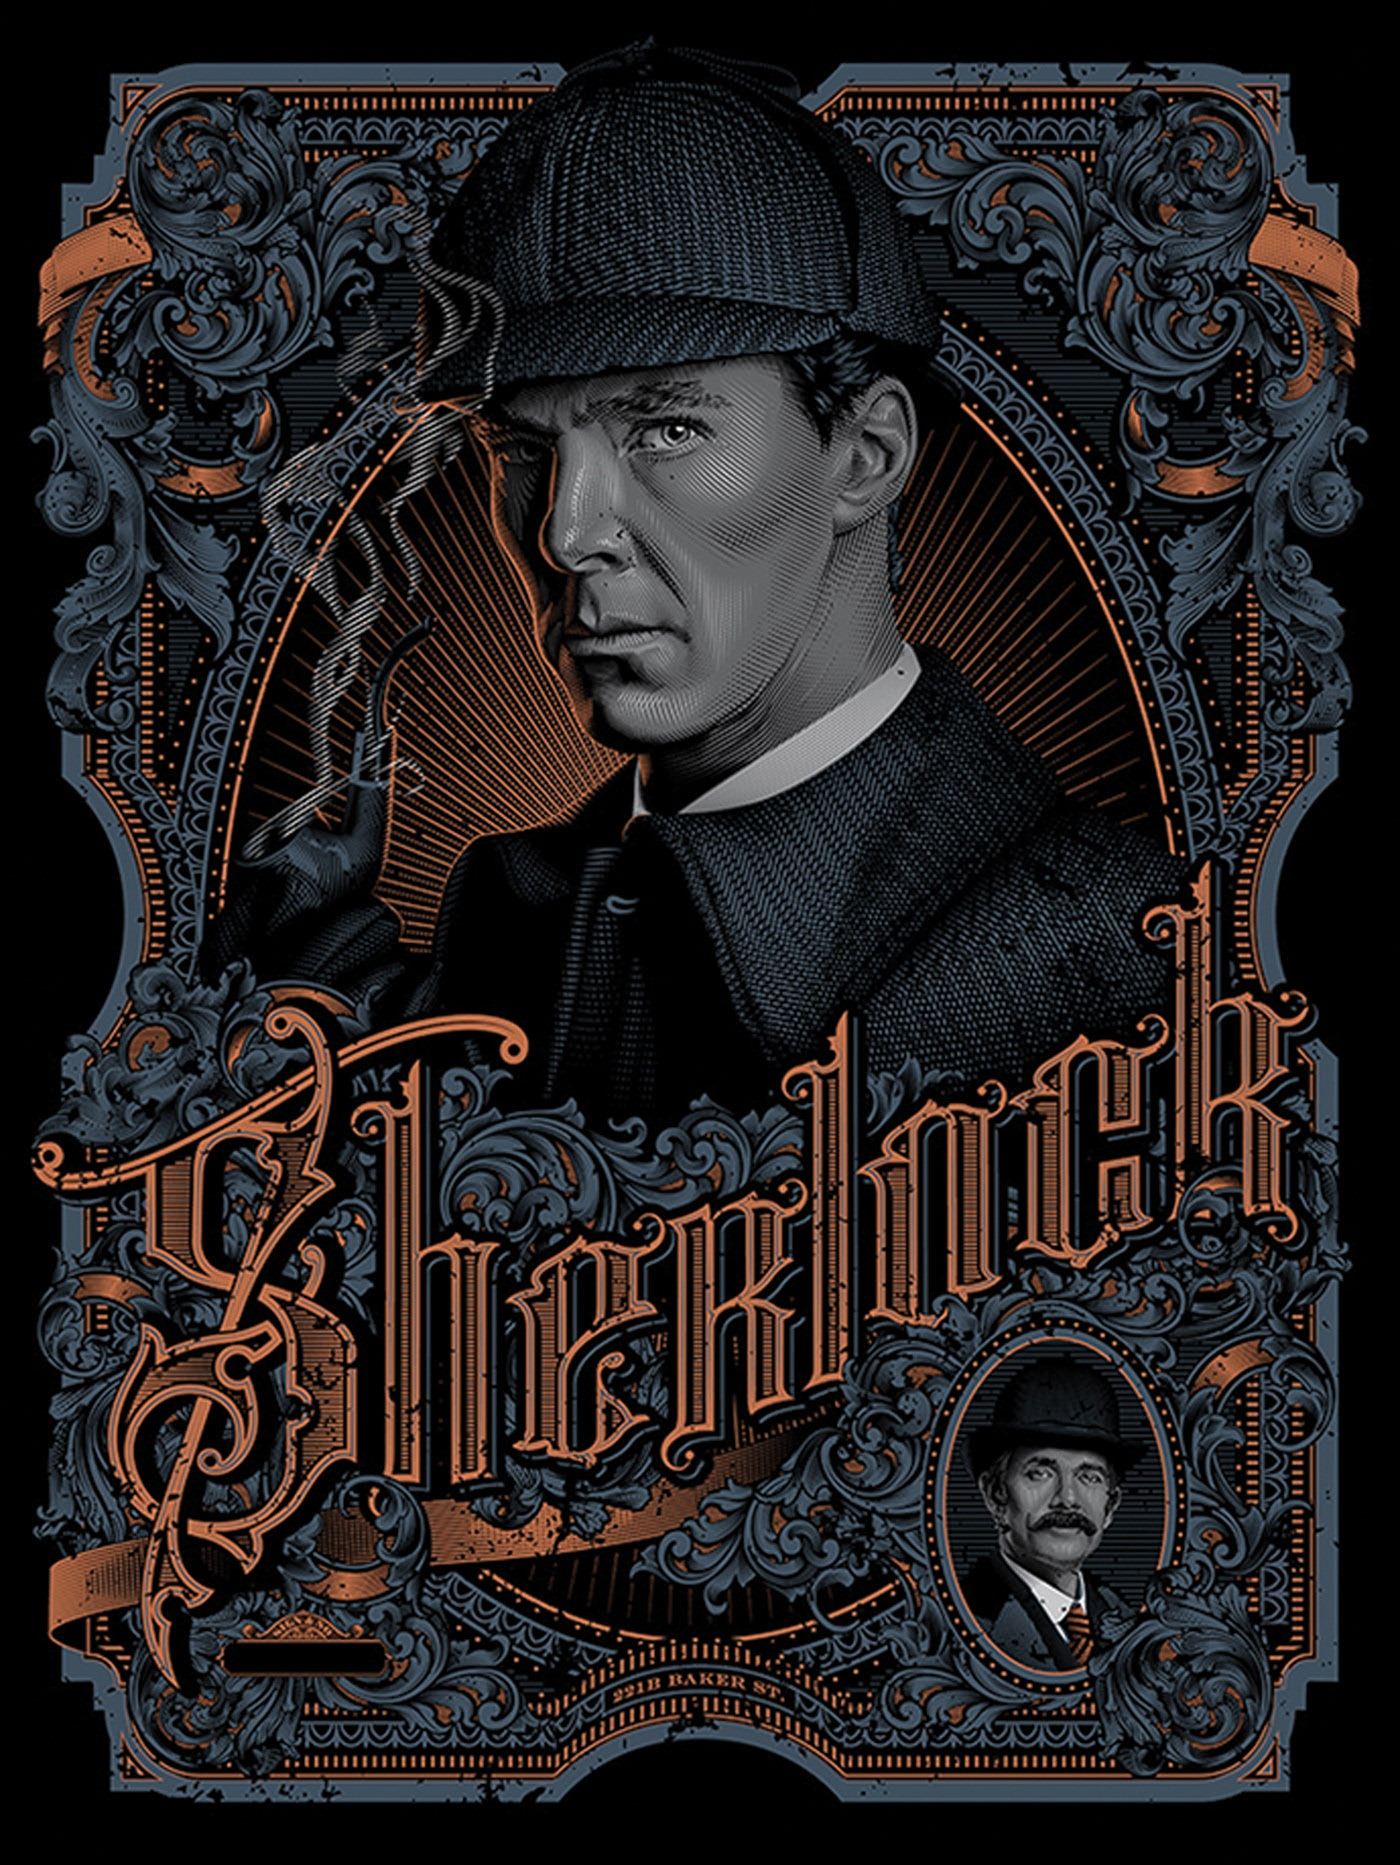 poster design portrait illustration sherlock